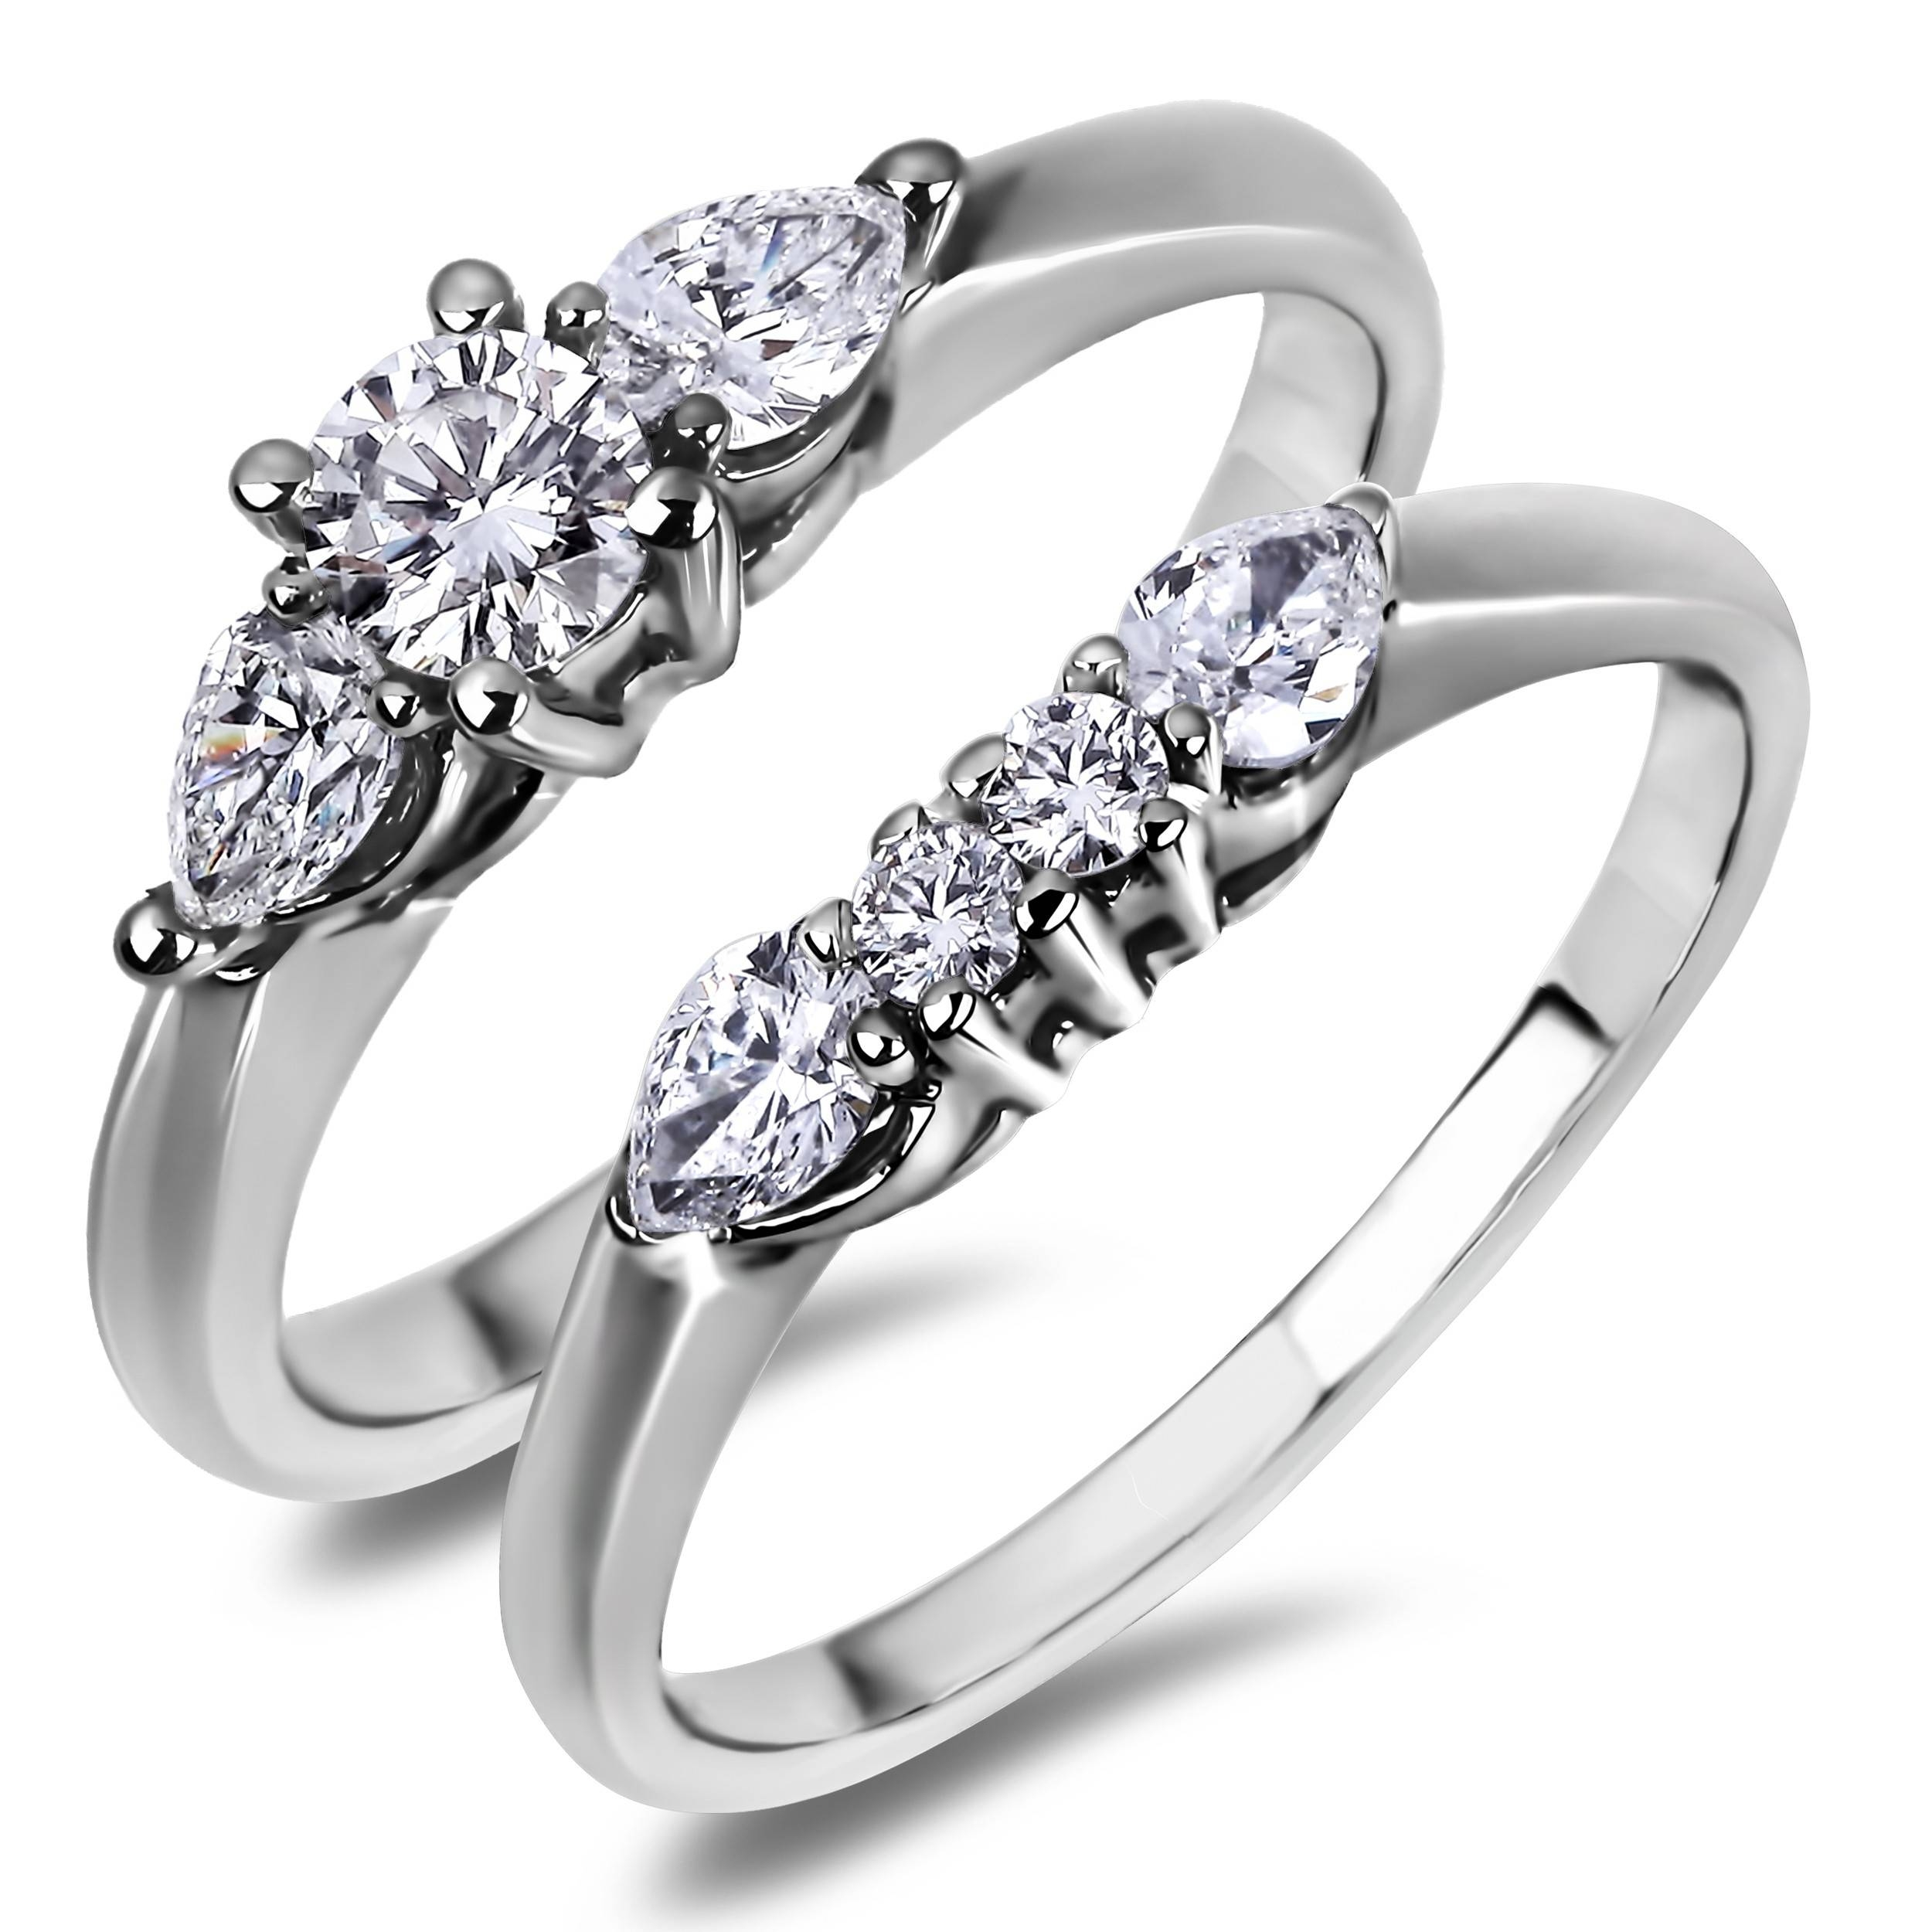 set ring his choose sizes com matching sterling hers titanium and wedding silver ip rings groom for her trio bands him walmart